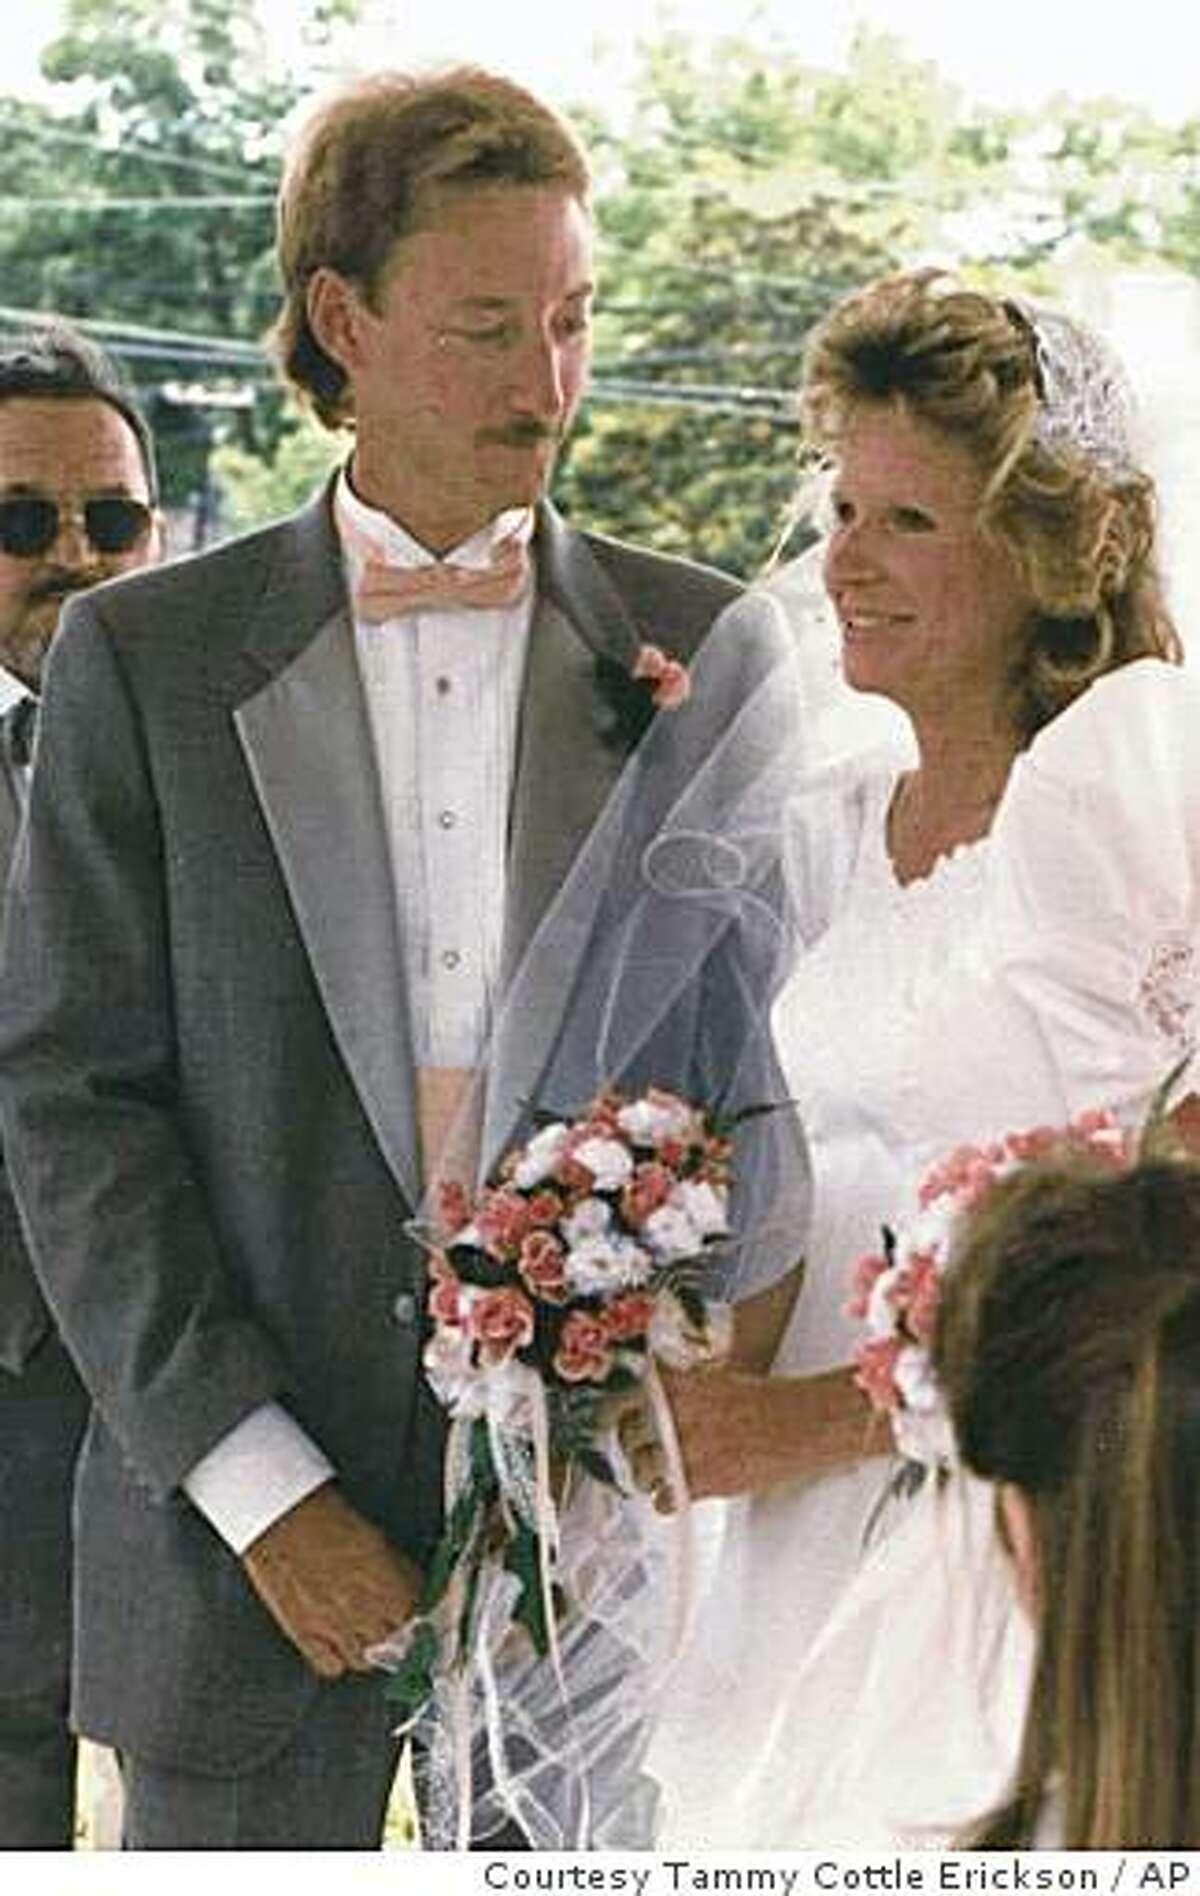 In this photo provided by Tammy Cottle Erickson; Terry Cottle and Cheryl Sweat are seen during their wedding ceremony on May 13, 1989, in South Carolina. (AP Photo/Courtesy of Tammy Cottle Erickson) **NO SALES**